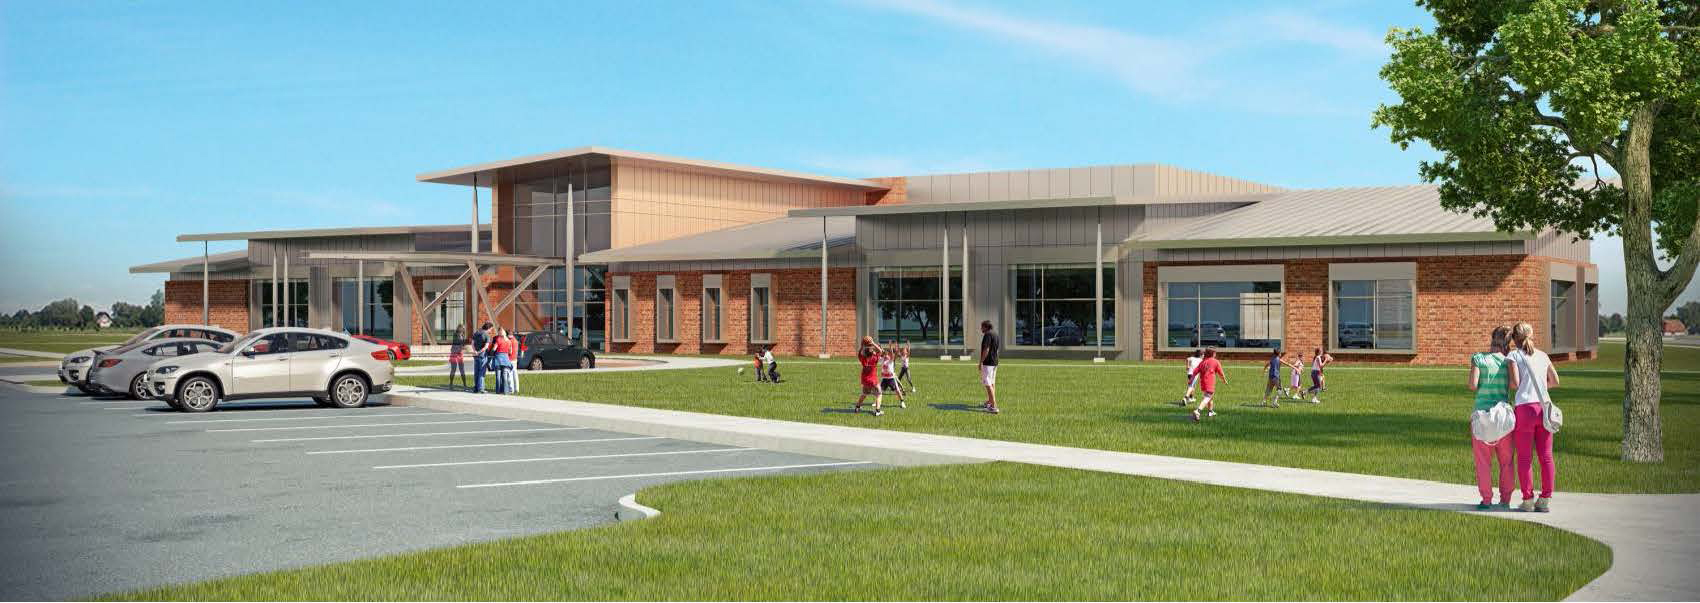 Sully Community Center Rendering